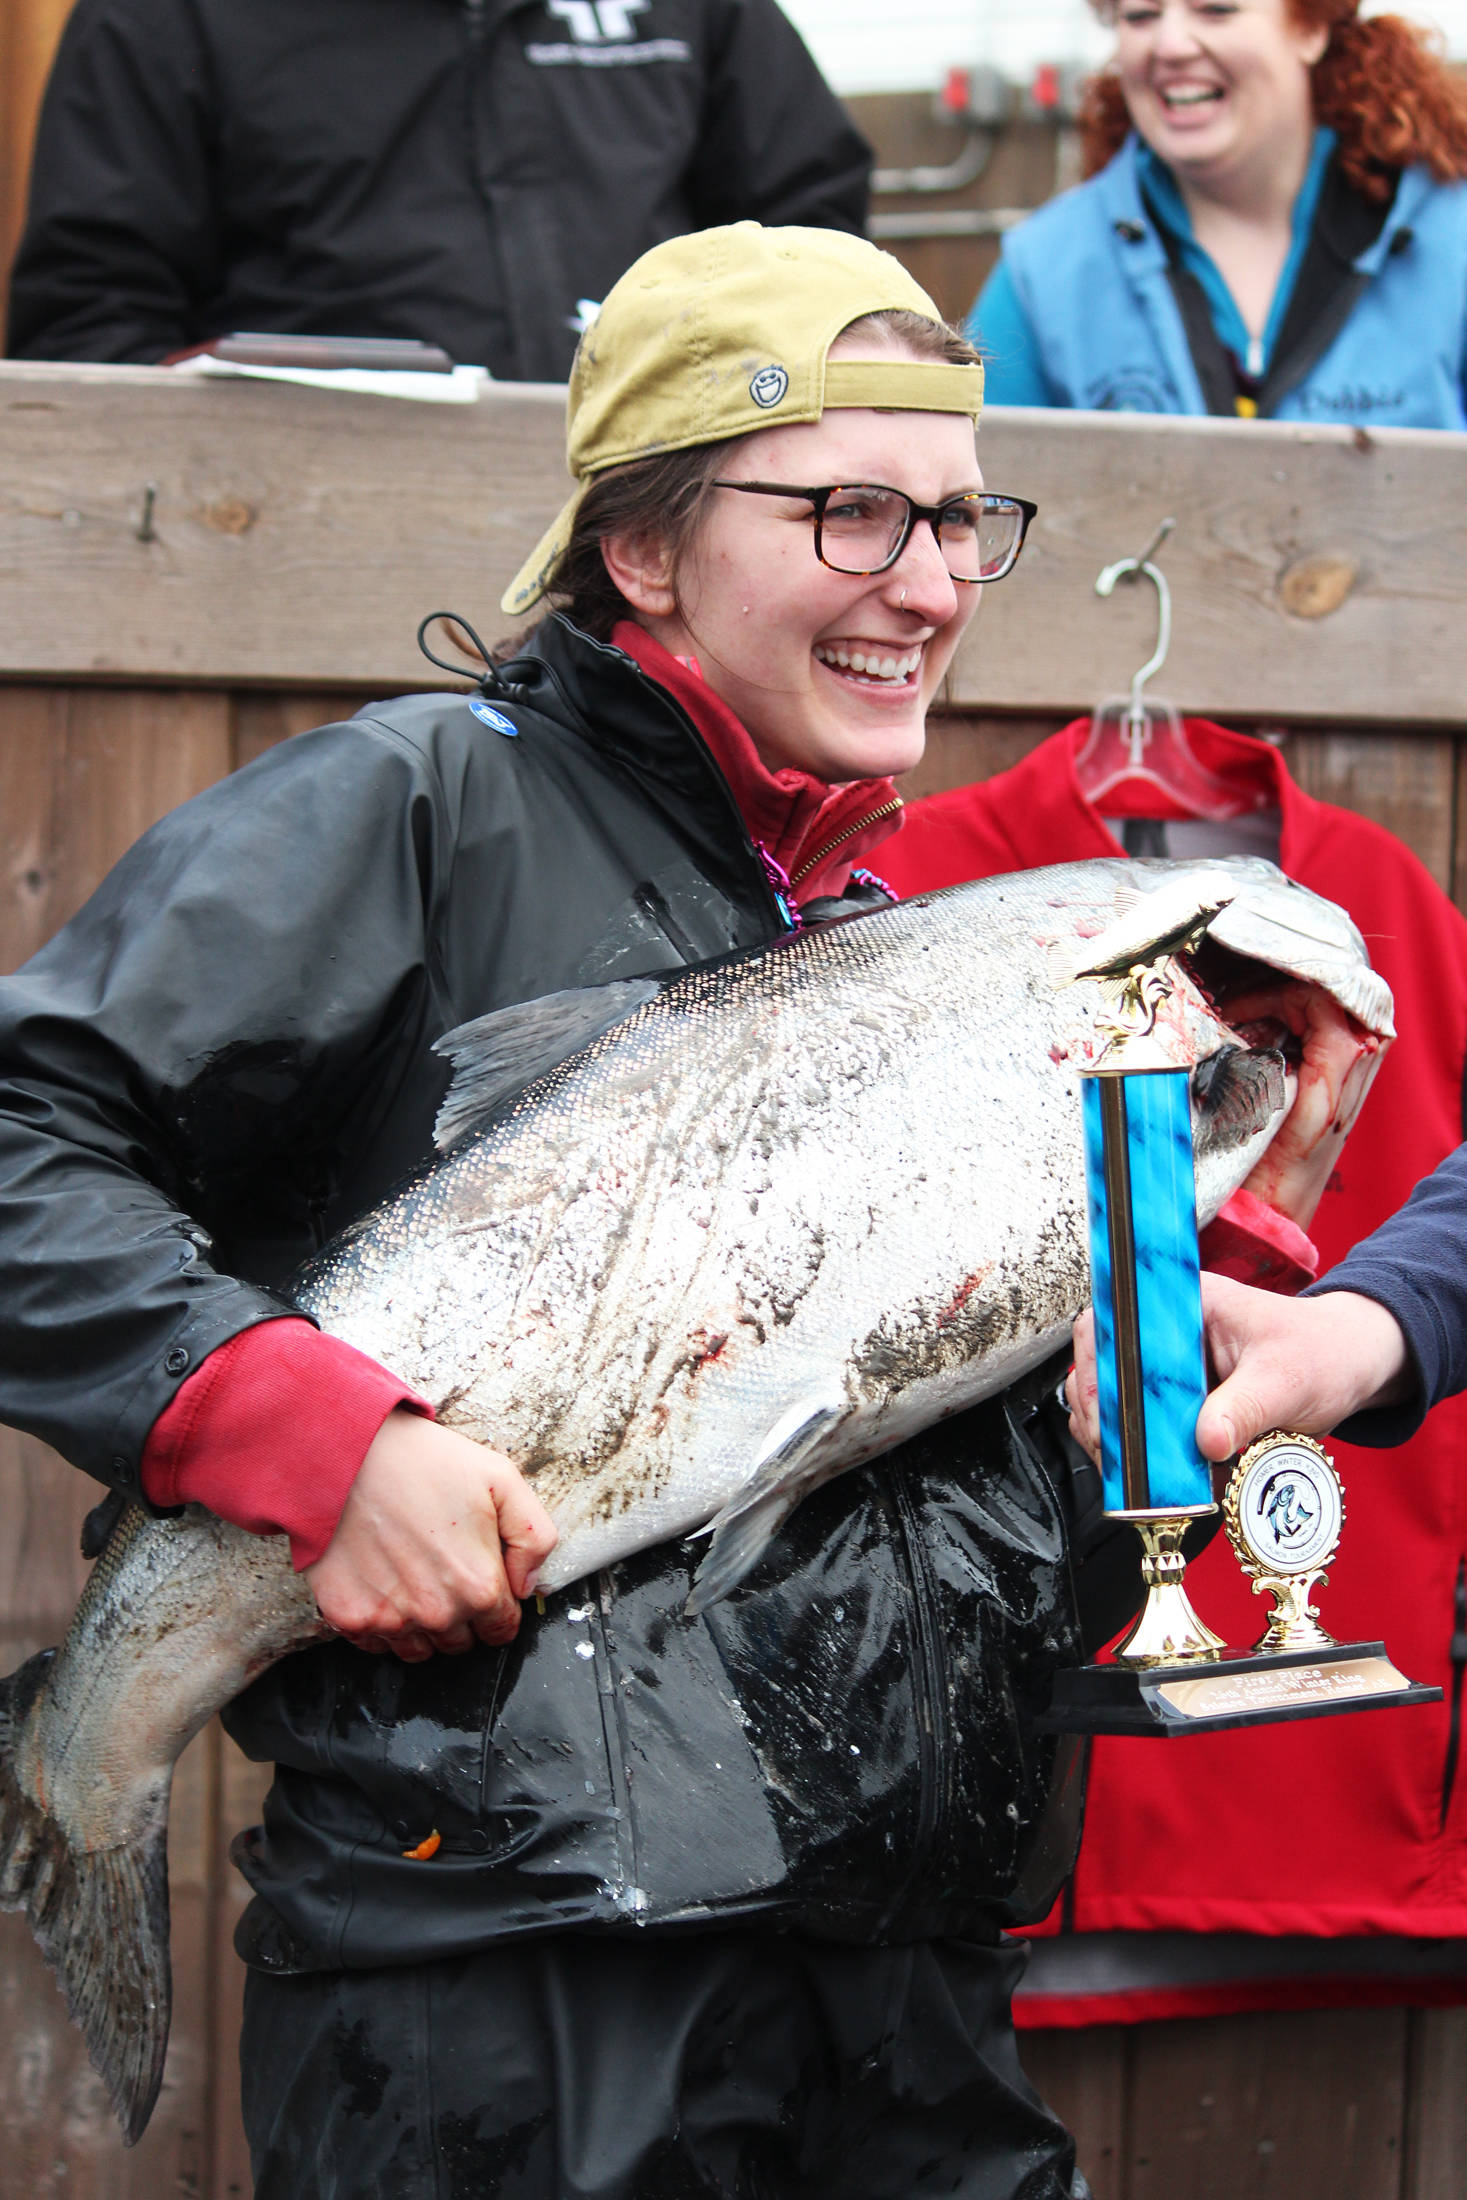 Shayna Perry of Eagle River holds up her 26.7-pound white king salmon while accepting first prize in the Homer Winter King Salmon Tournament on Saturday, March 23, 2019 at Coal Point Seafoods in Homer, Alaska. Perry is the first woman to win the tournament, according to the Homer Chamber of Commerce and Visitor Center. (Photo by Megan Pacer/Homer News)